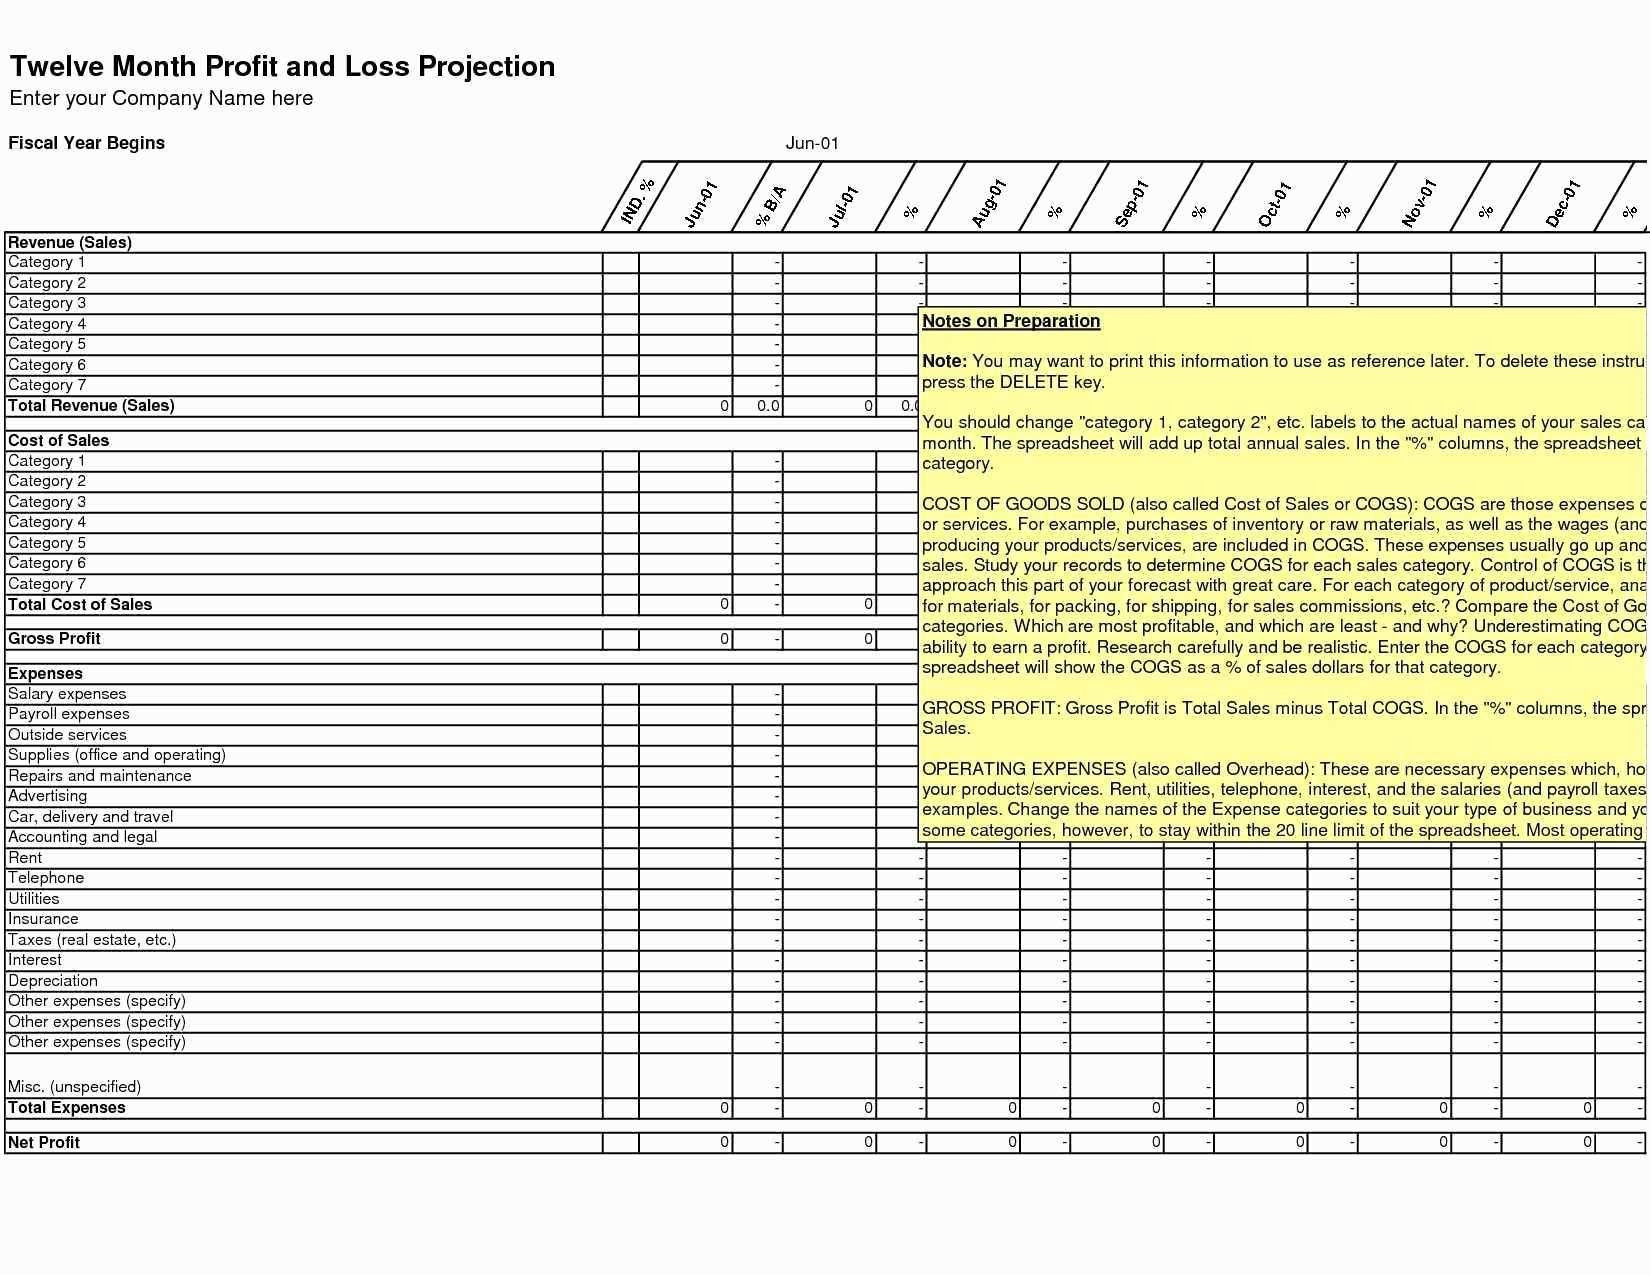 Tax Spreadsheet For Small Business Throughout Small Business Tax Spreadsheet Template List Of Small Business